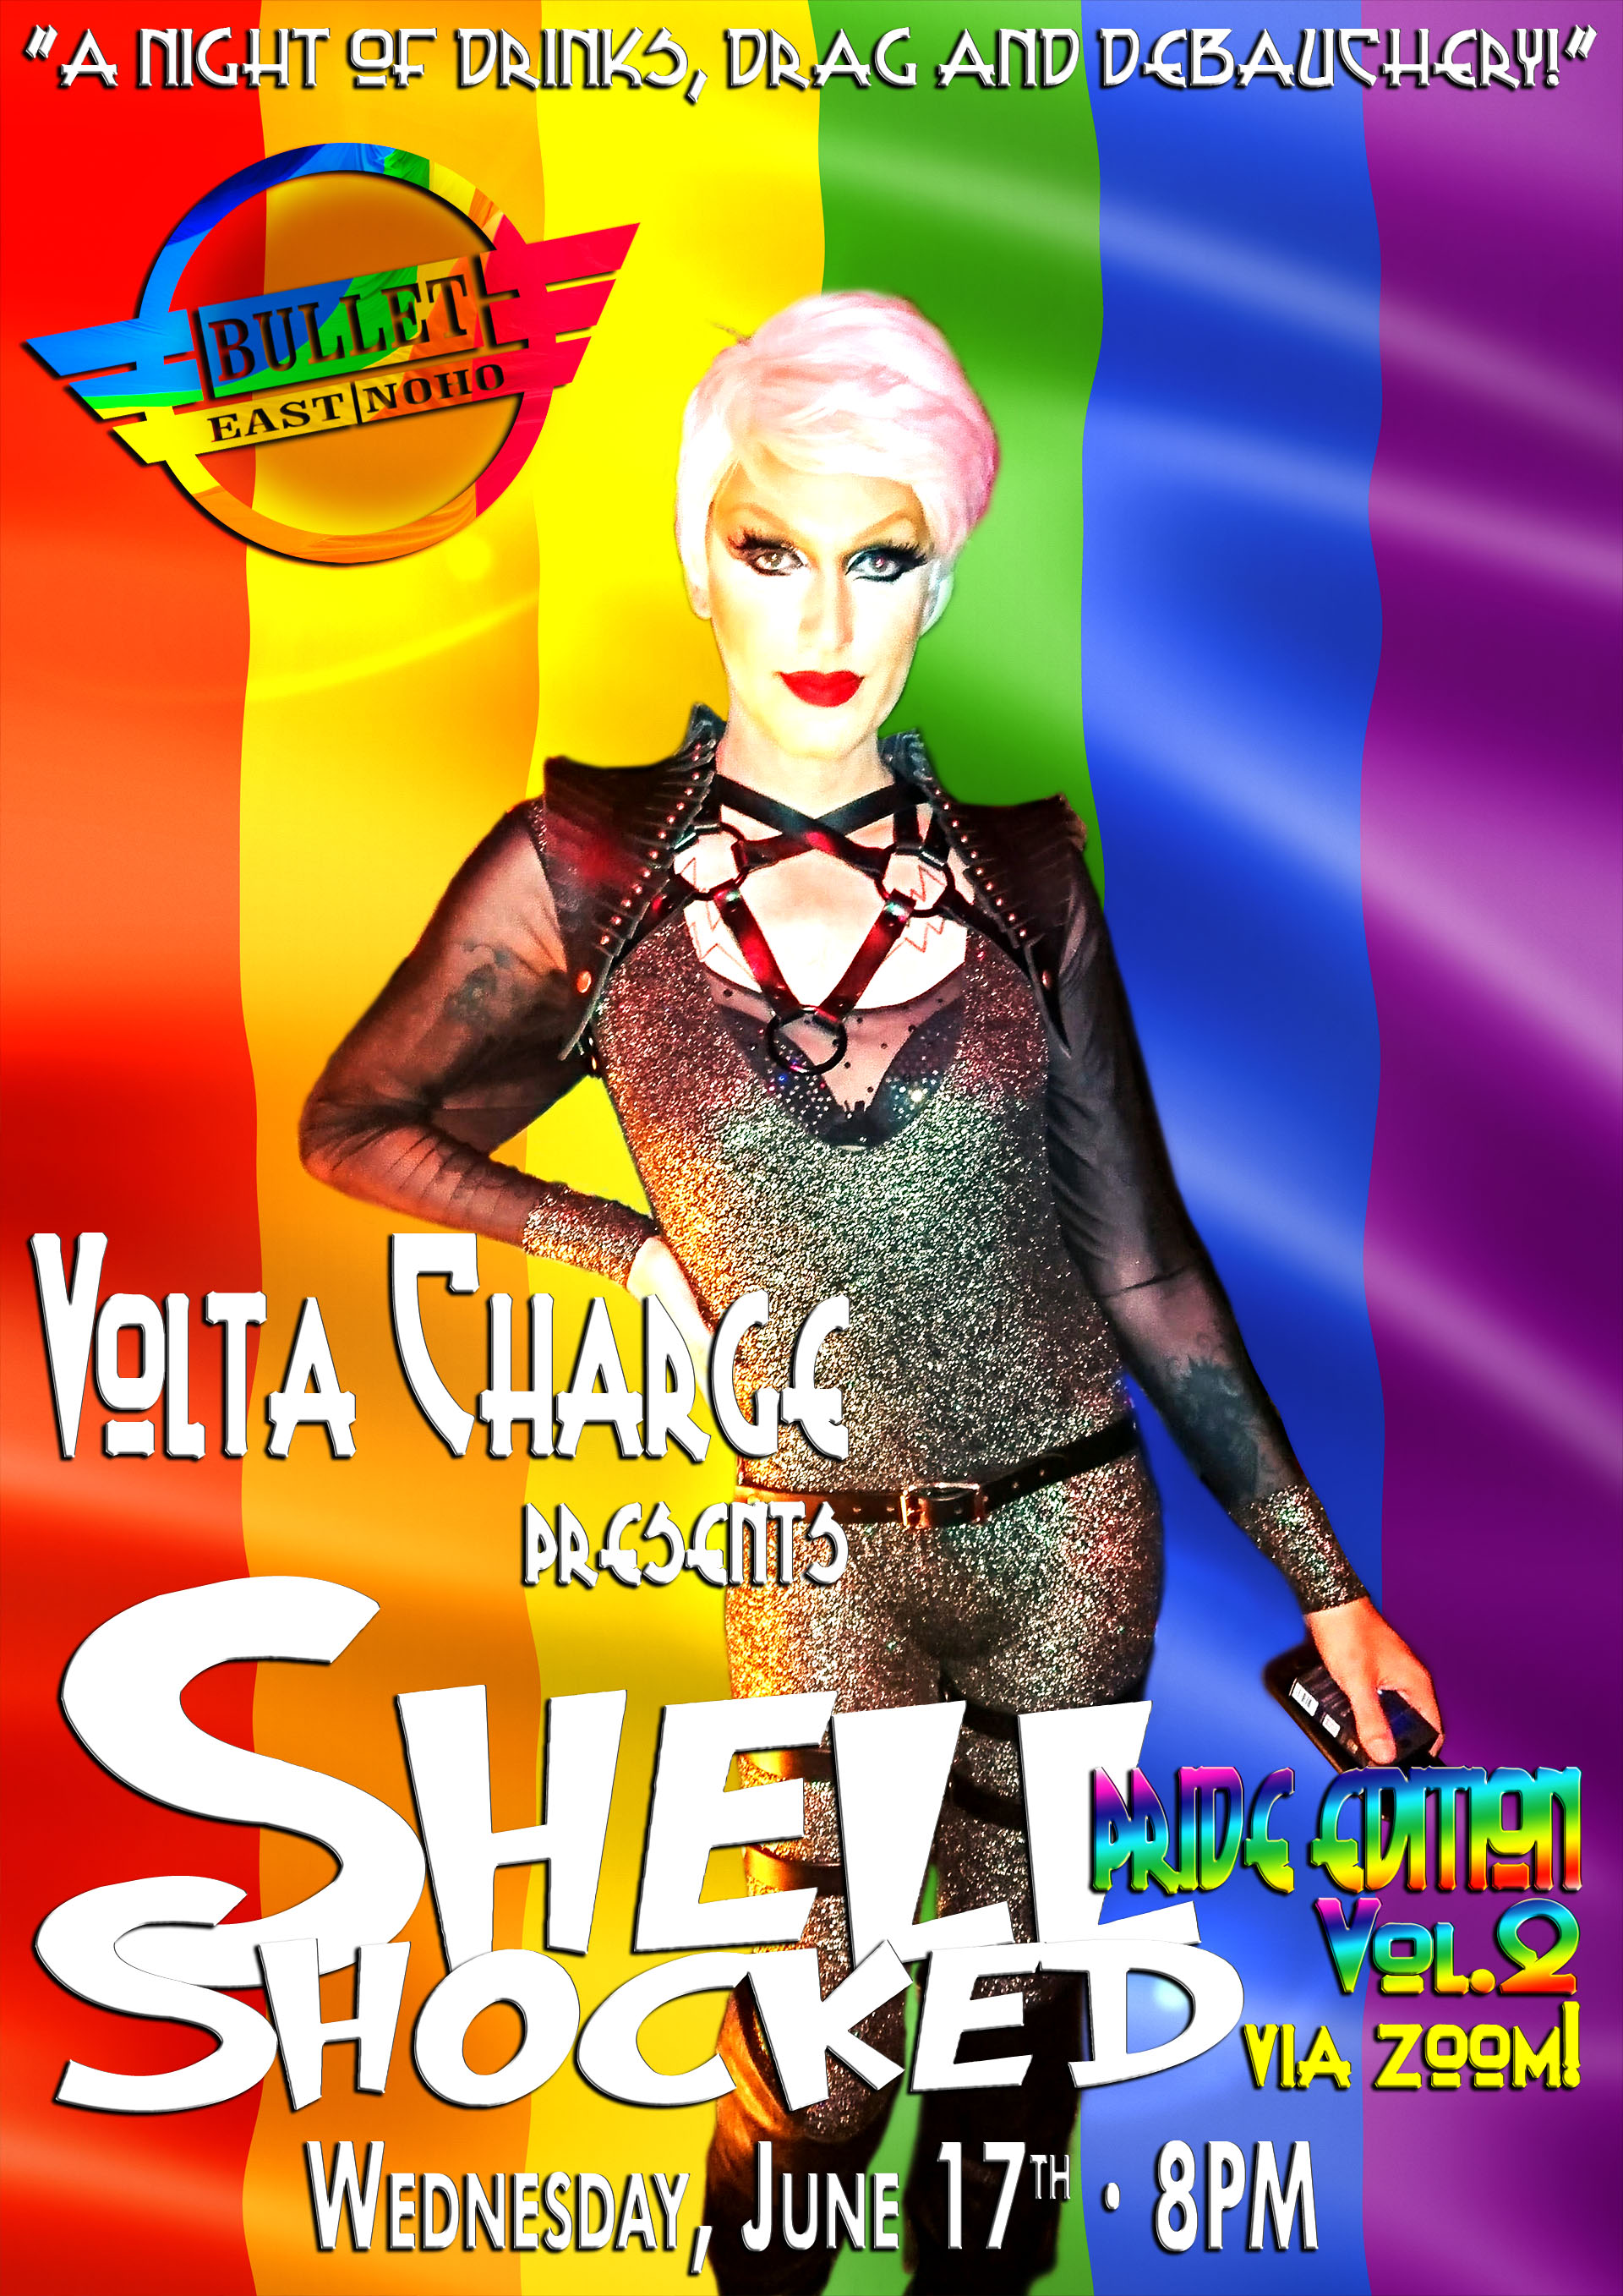 VOLTA CHARGE Presents SHELL SHOCKED PRIDE EDITION ONLINE: Wednesday, June 17, 2020 at 8:00 PM via ZOOM!